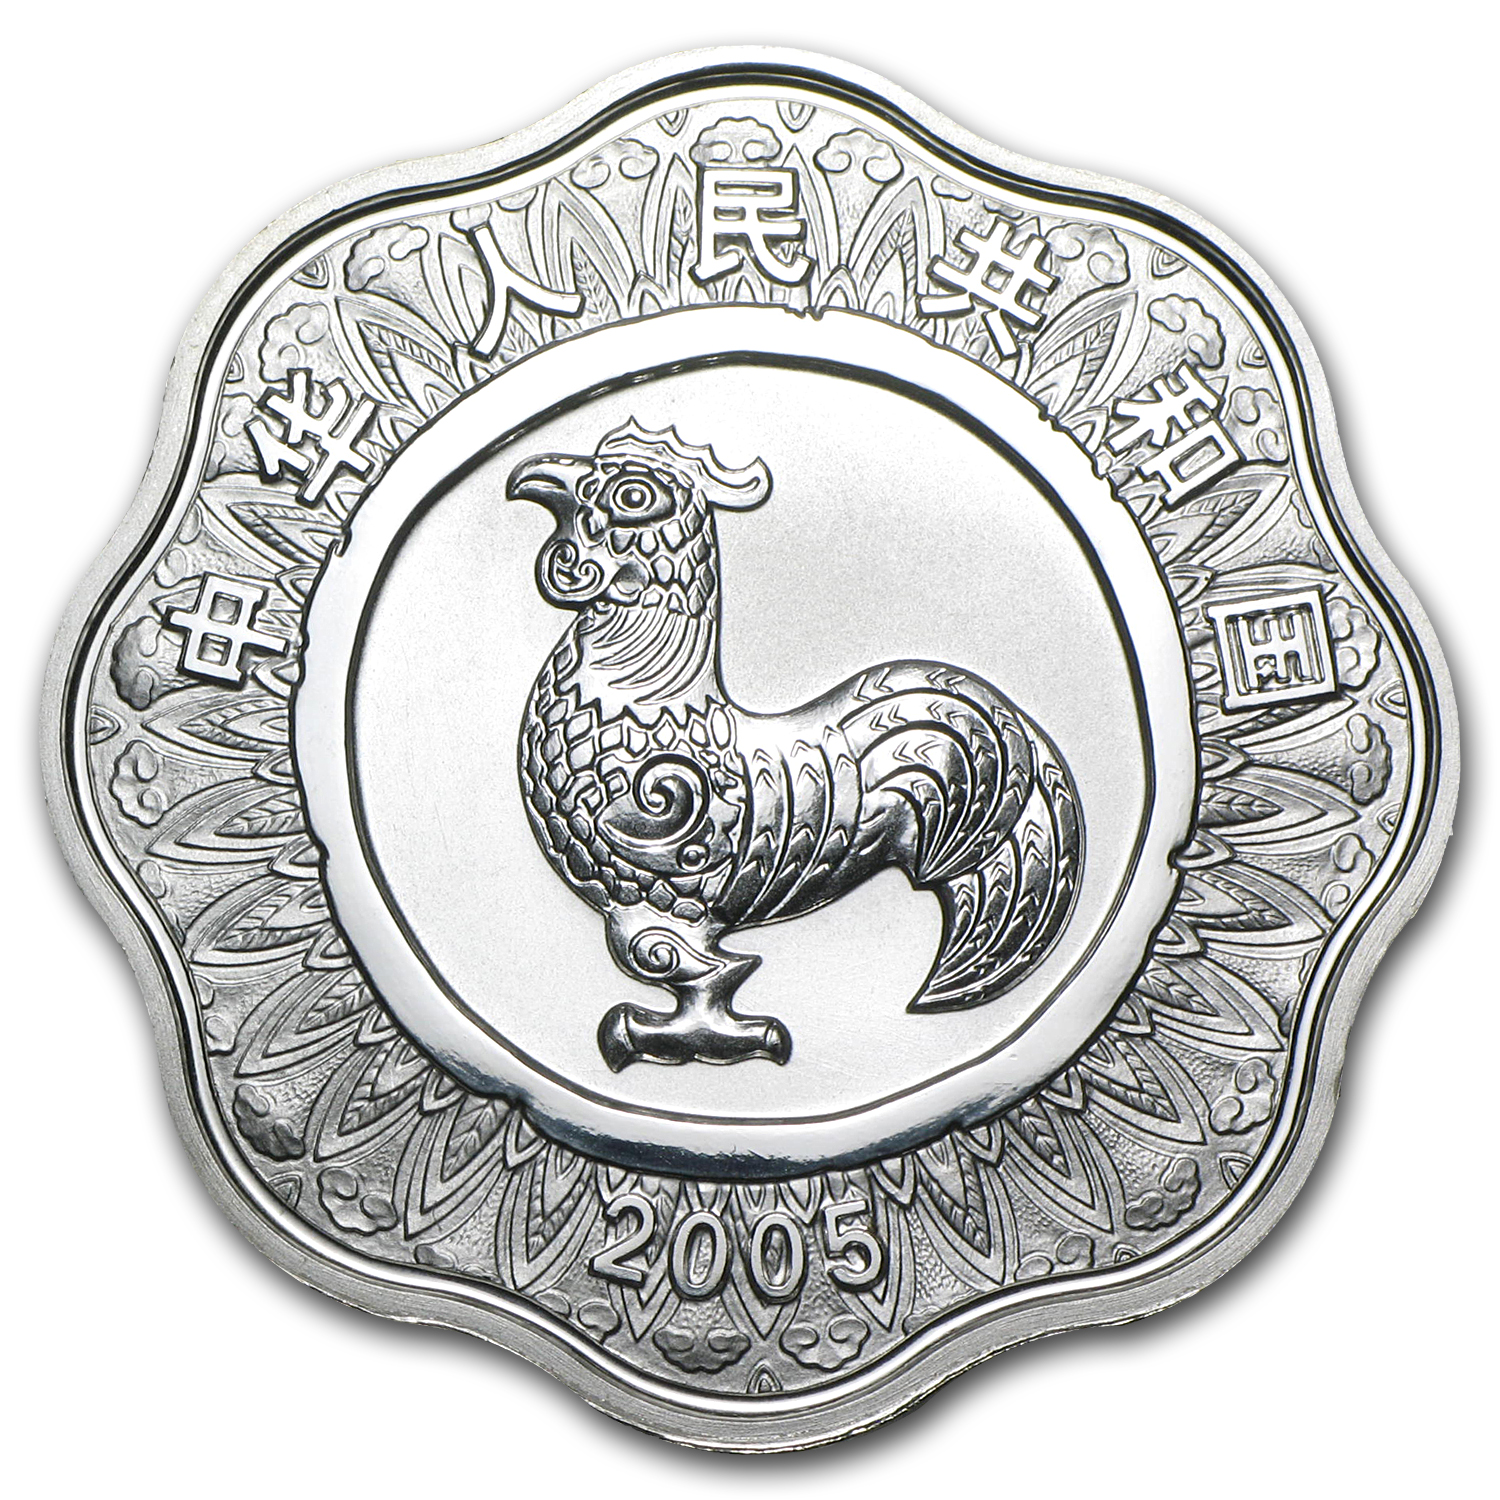 2005 Year of the Rooster 1 oz Silver - Flower Coin (w/Box & CoA)